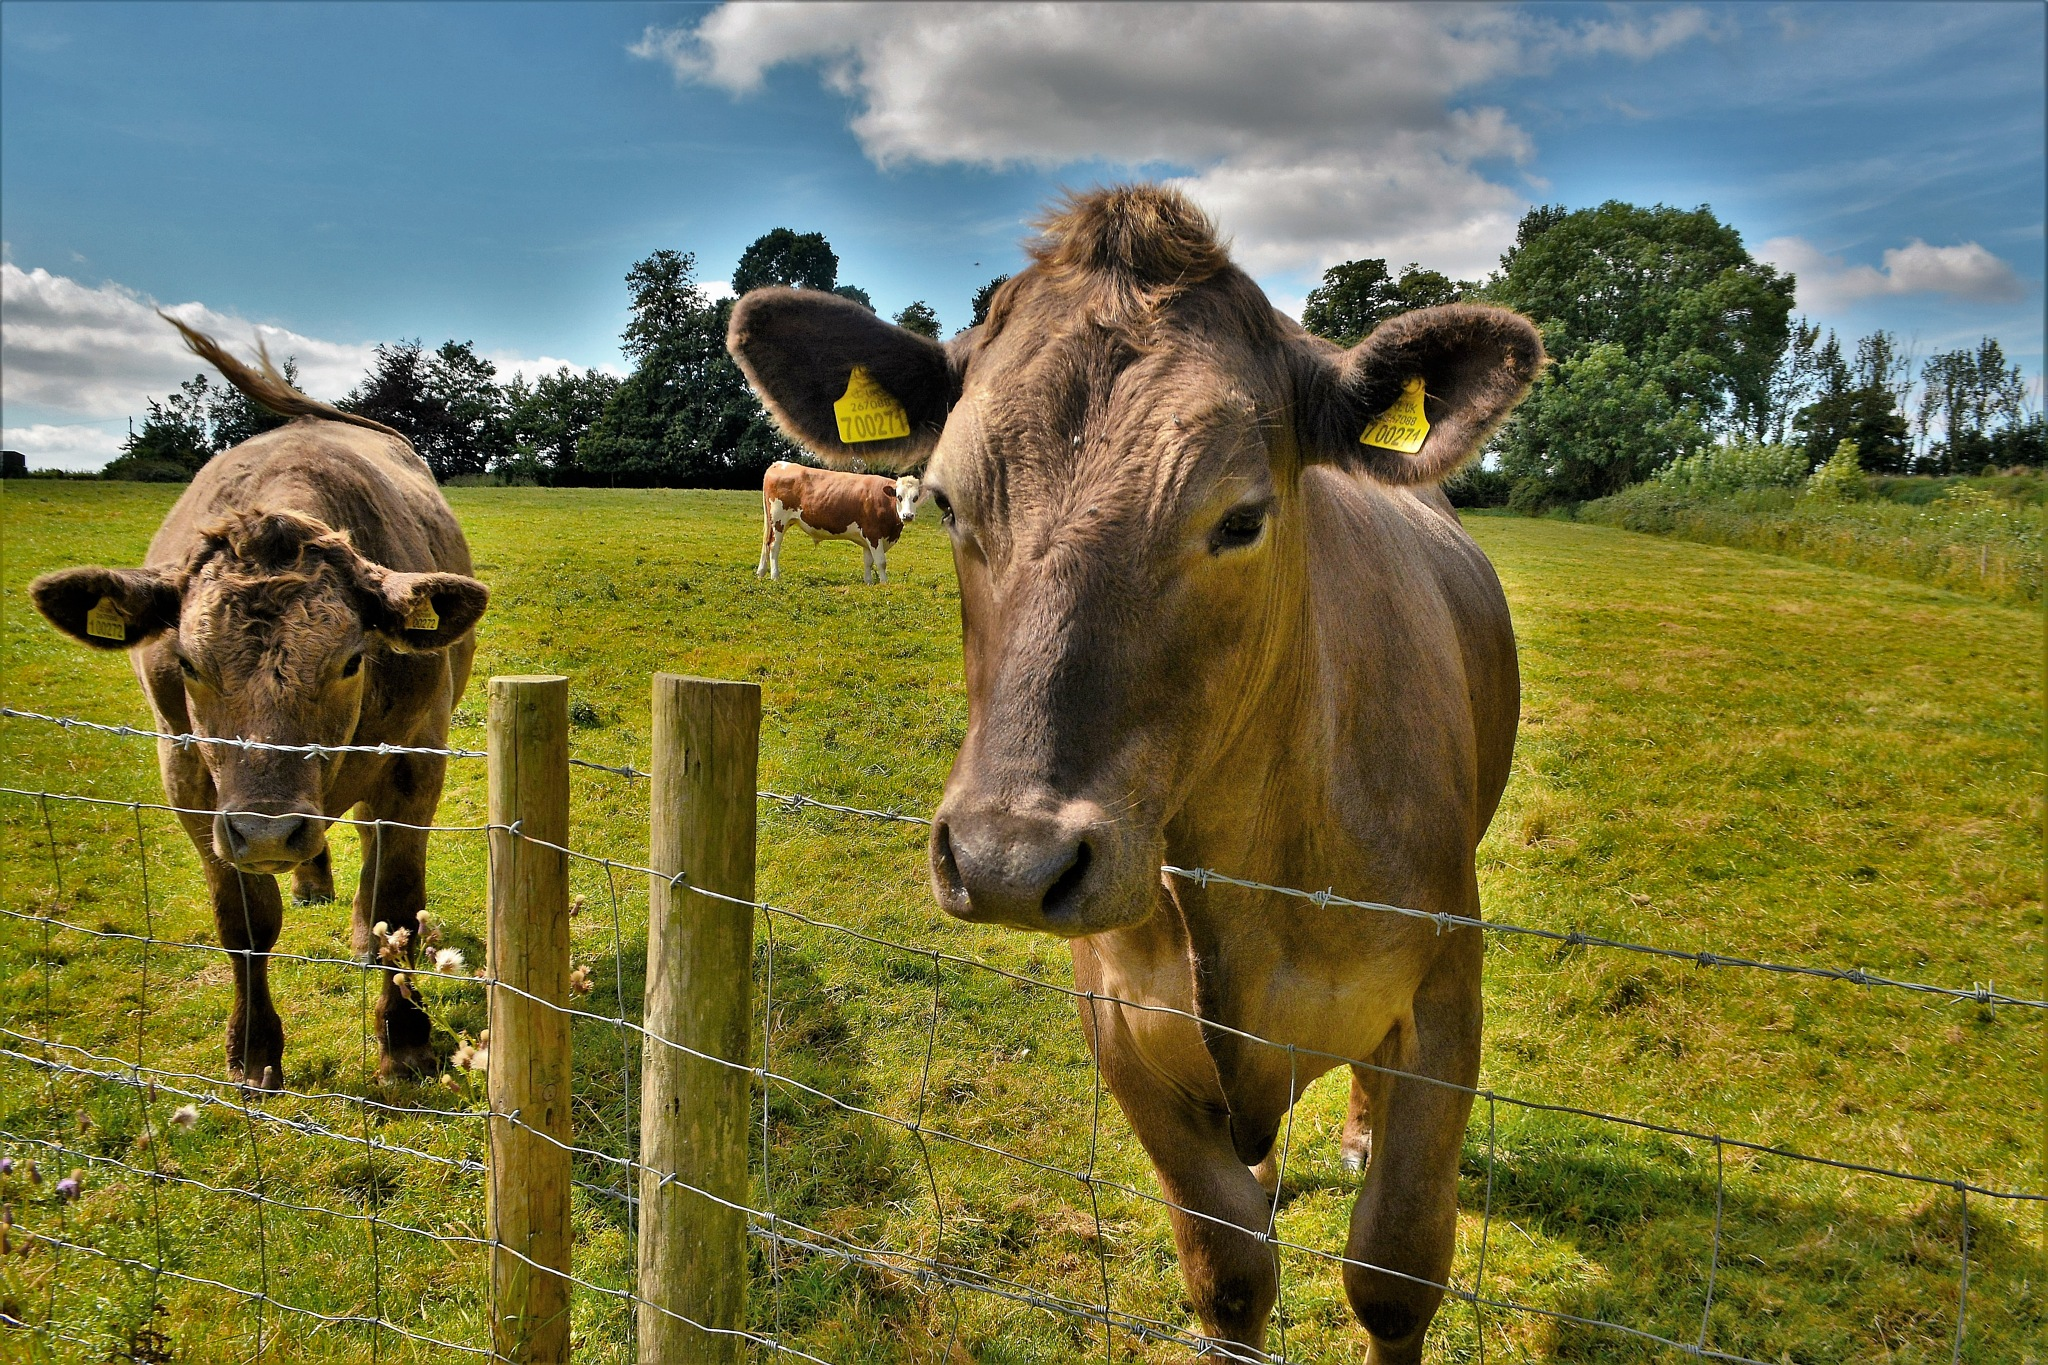 What started off as Bullocks, ended with Bullocks by tim.wells.79